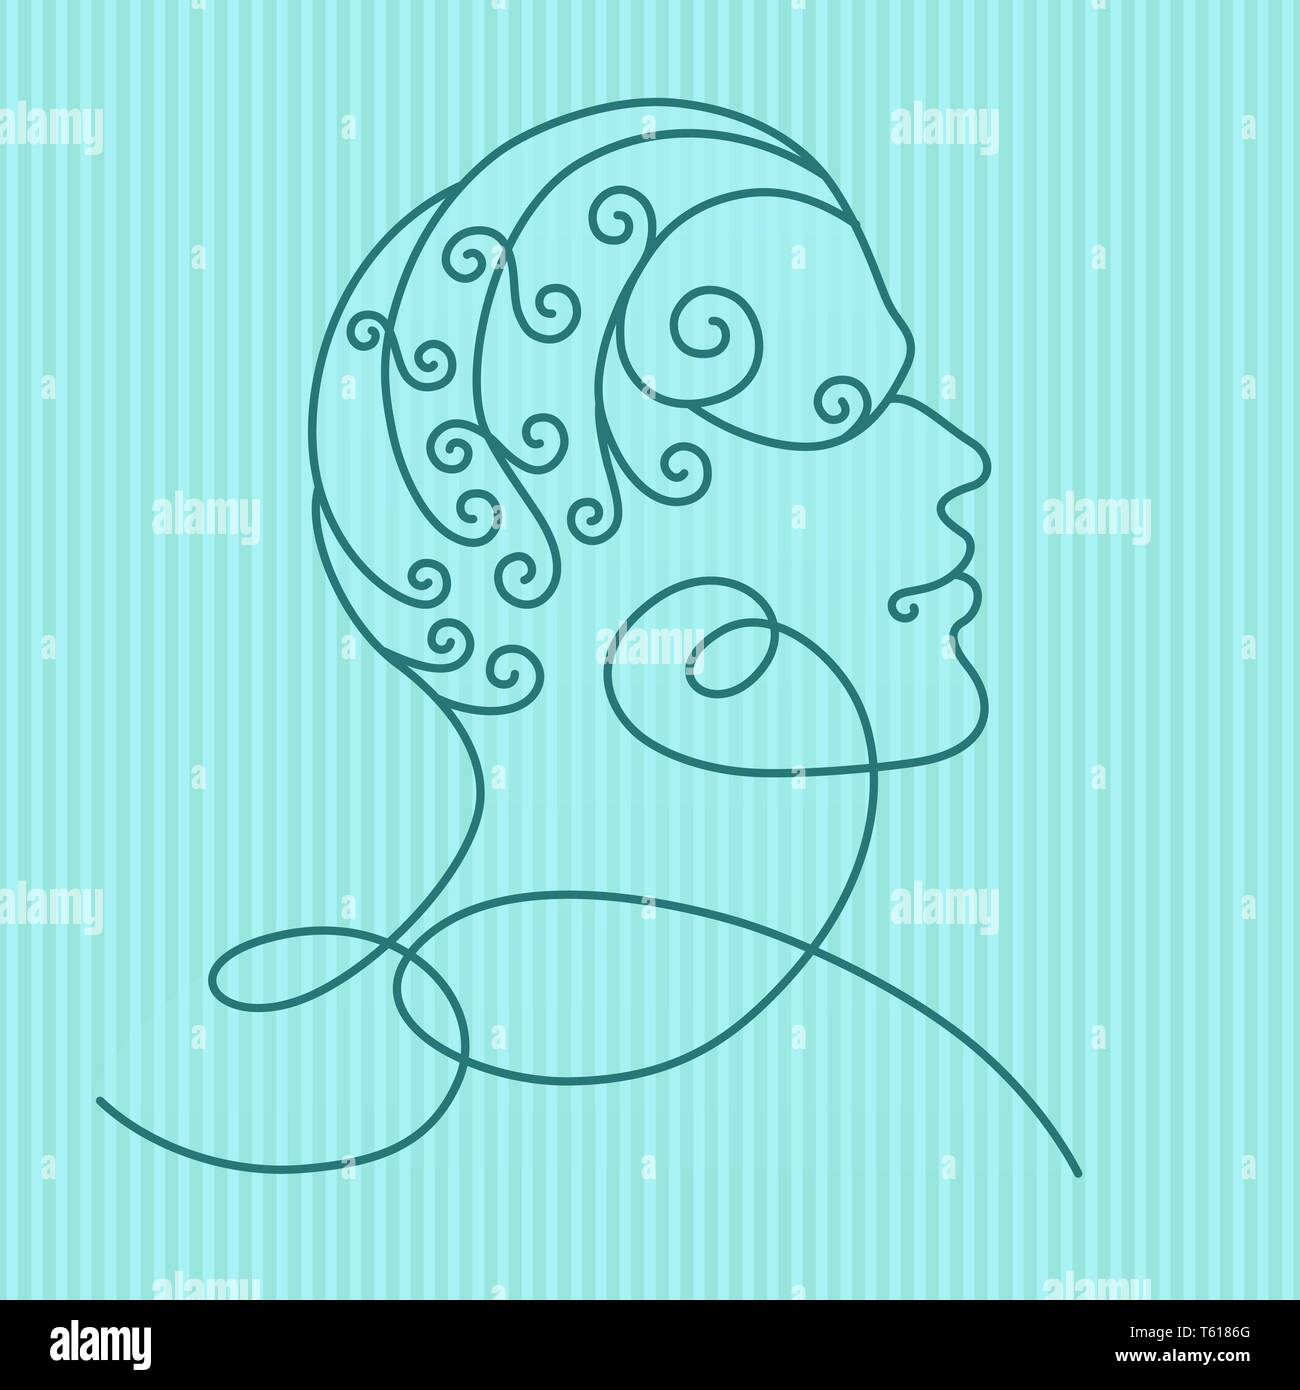 Human head profile, isolated on blue striped background. Line art. Vector illustration for your design. Stock Vector